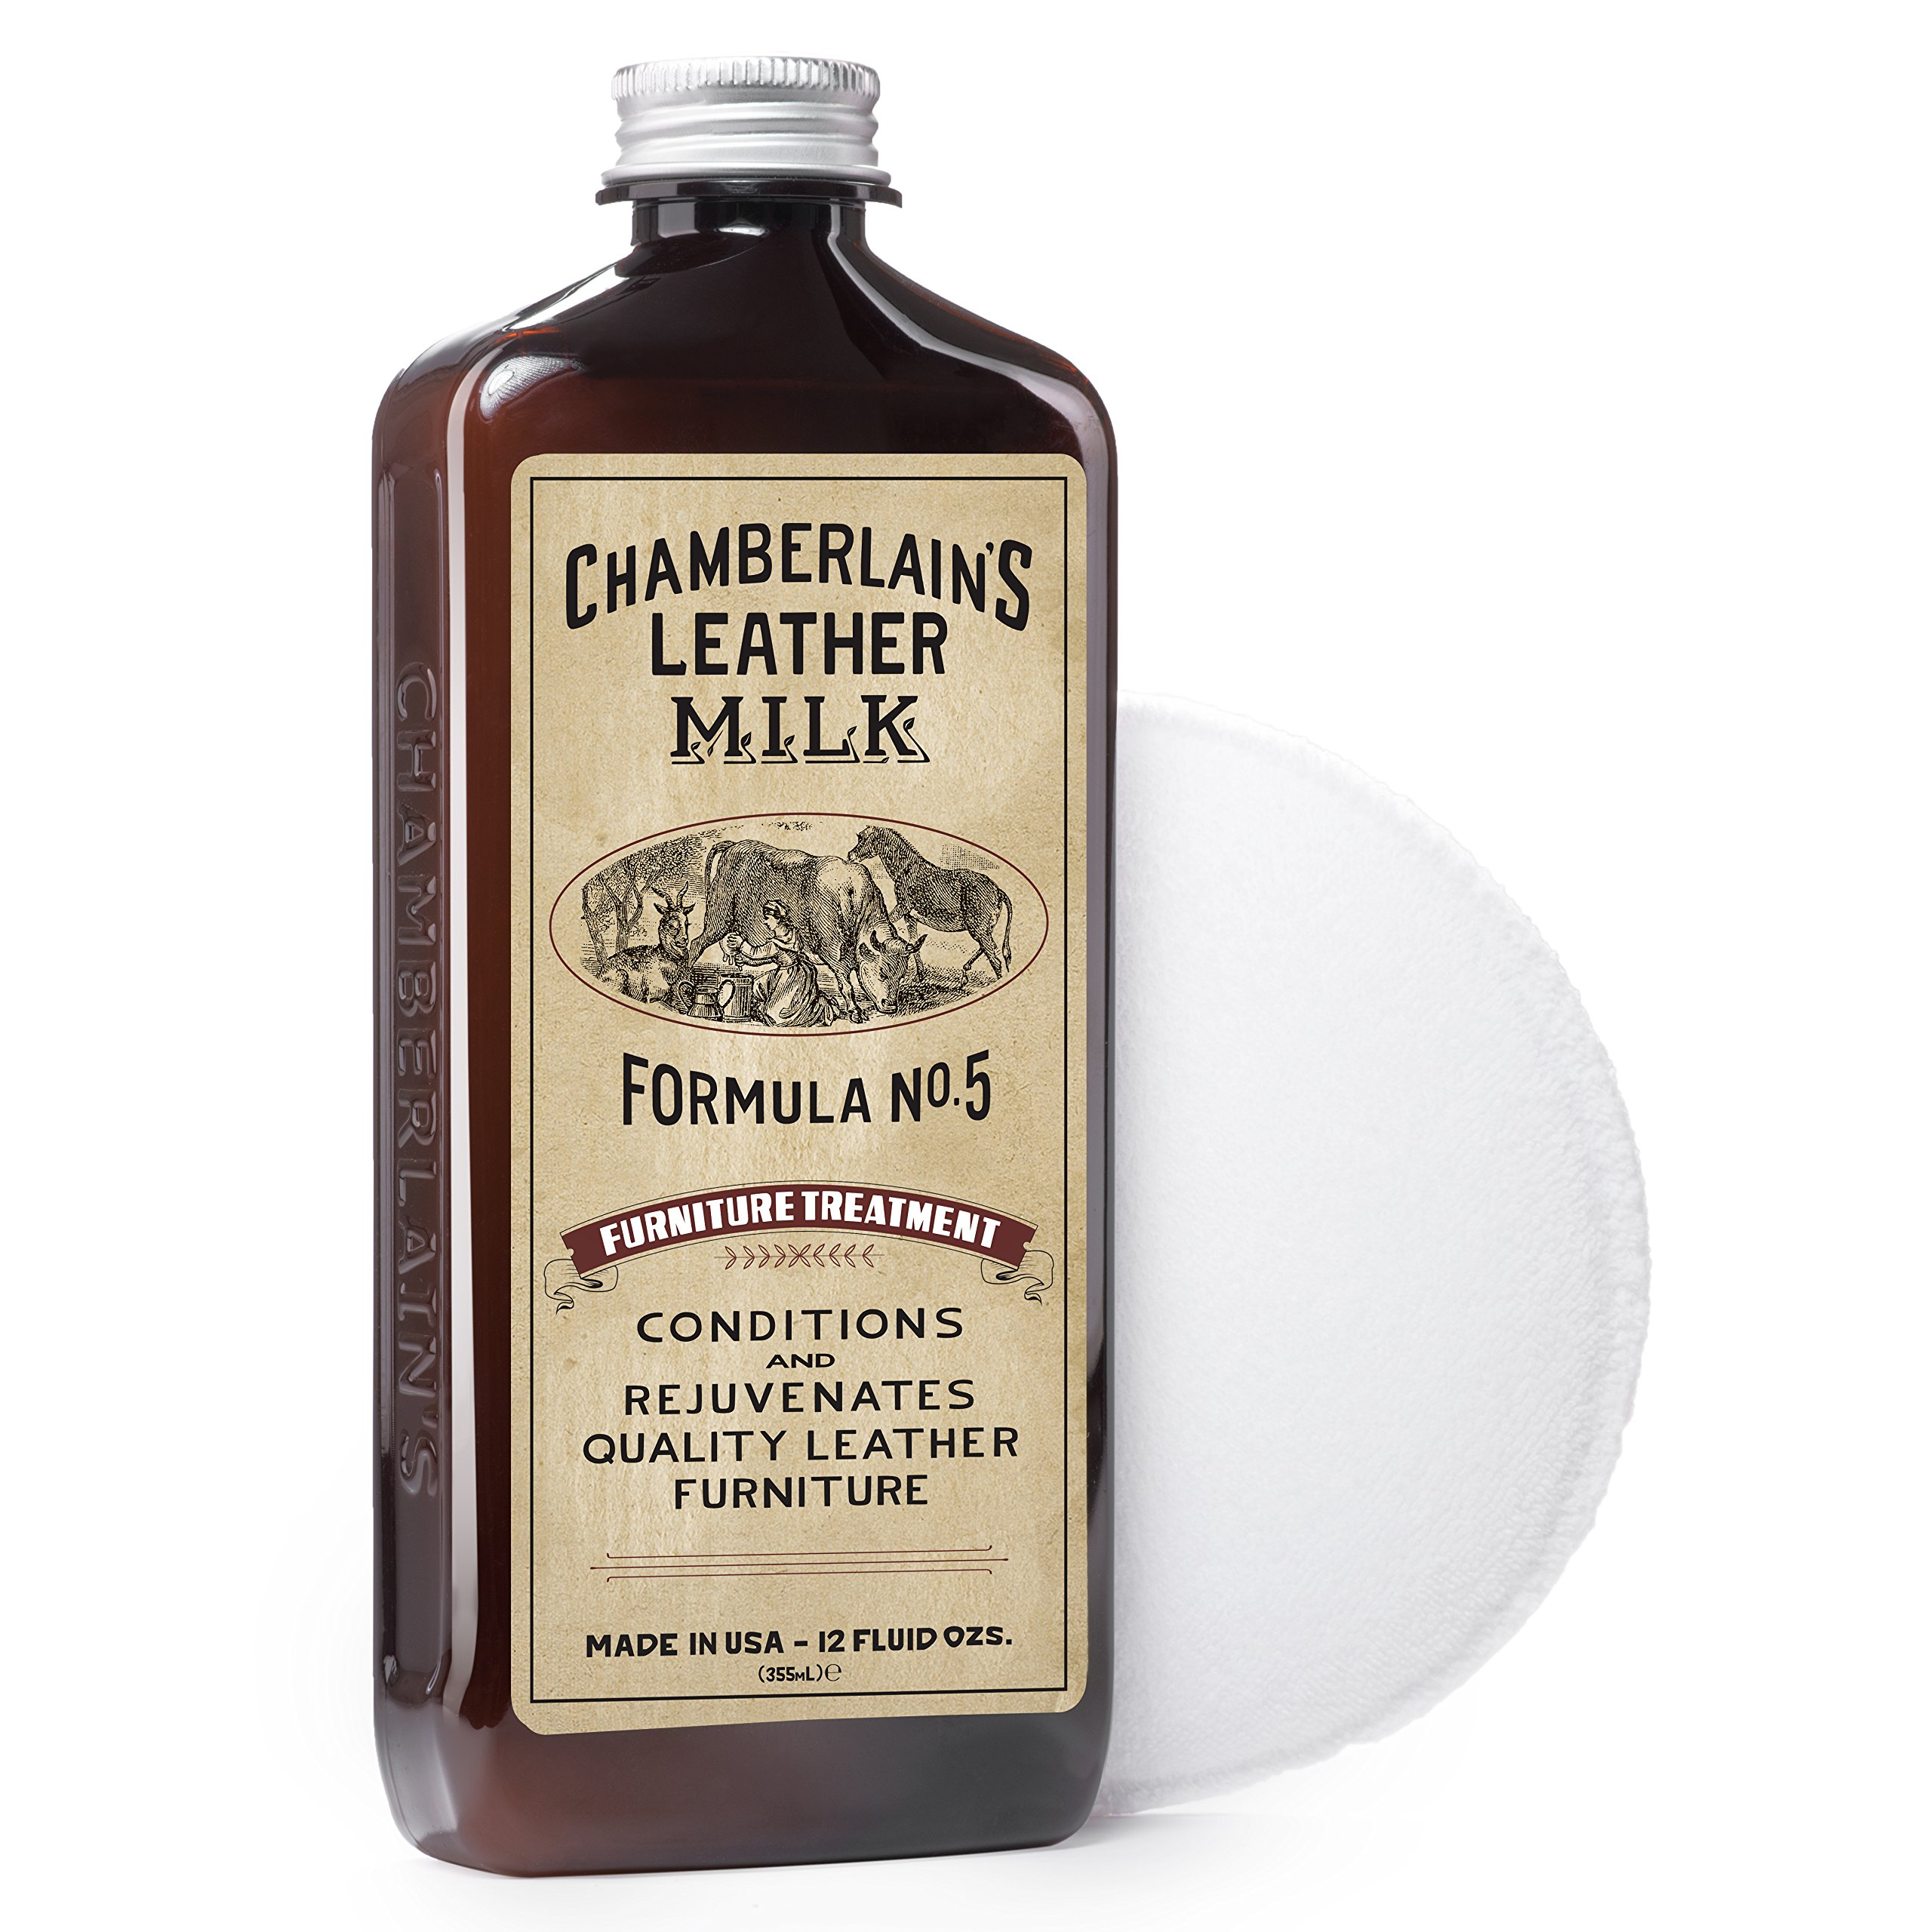 Leather Milk Leather Furniture Cleaner & Conditioner Kit (2 Bottle Furniture Care Set) - Straight Cleaner No. 2 + Furniture Treatment No. 5 - All Natural, Non-Toxic. Made in USA. W/ 2 Restoration Pads